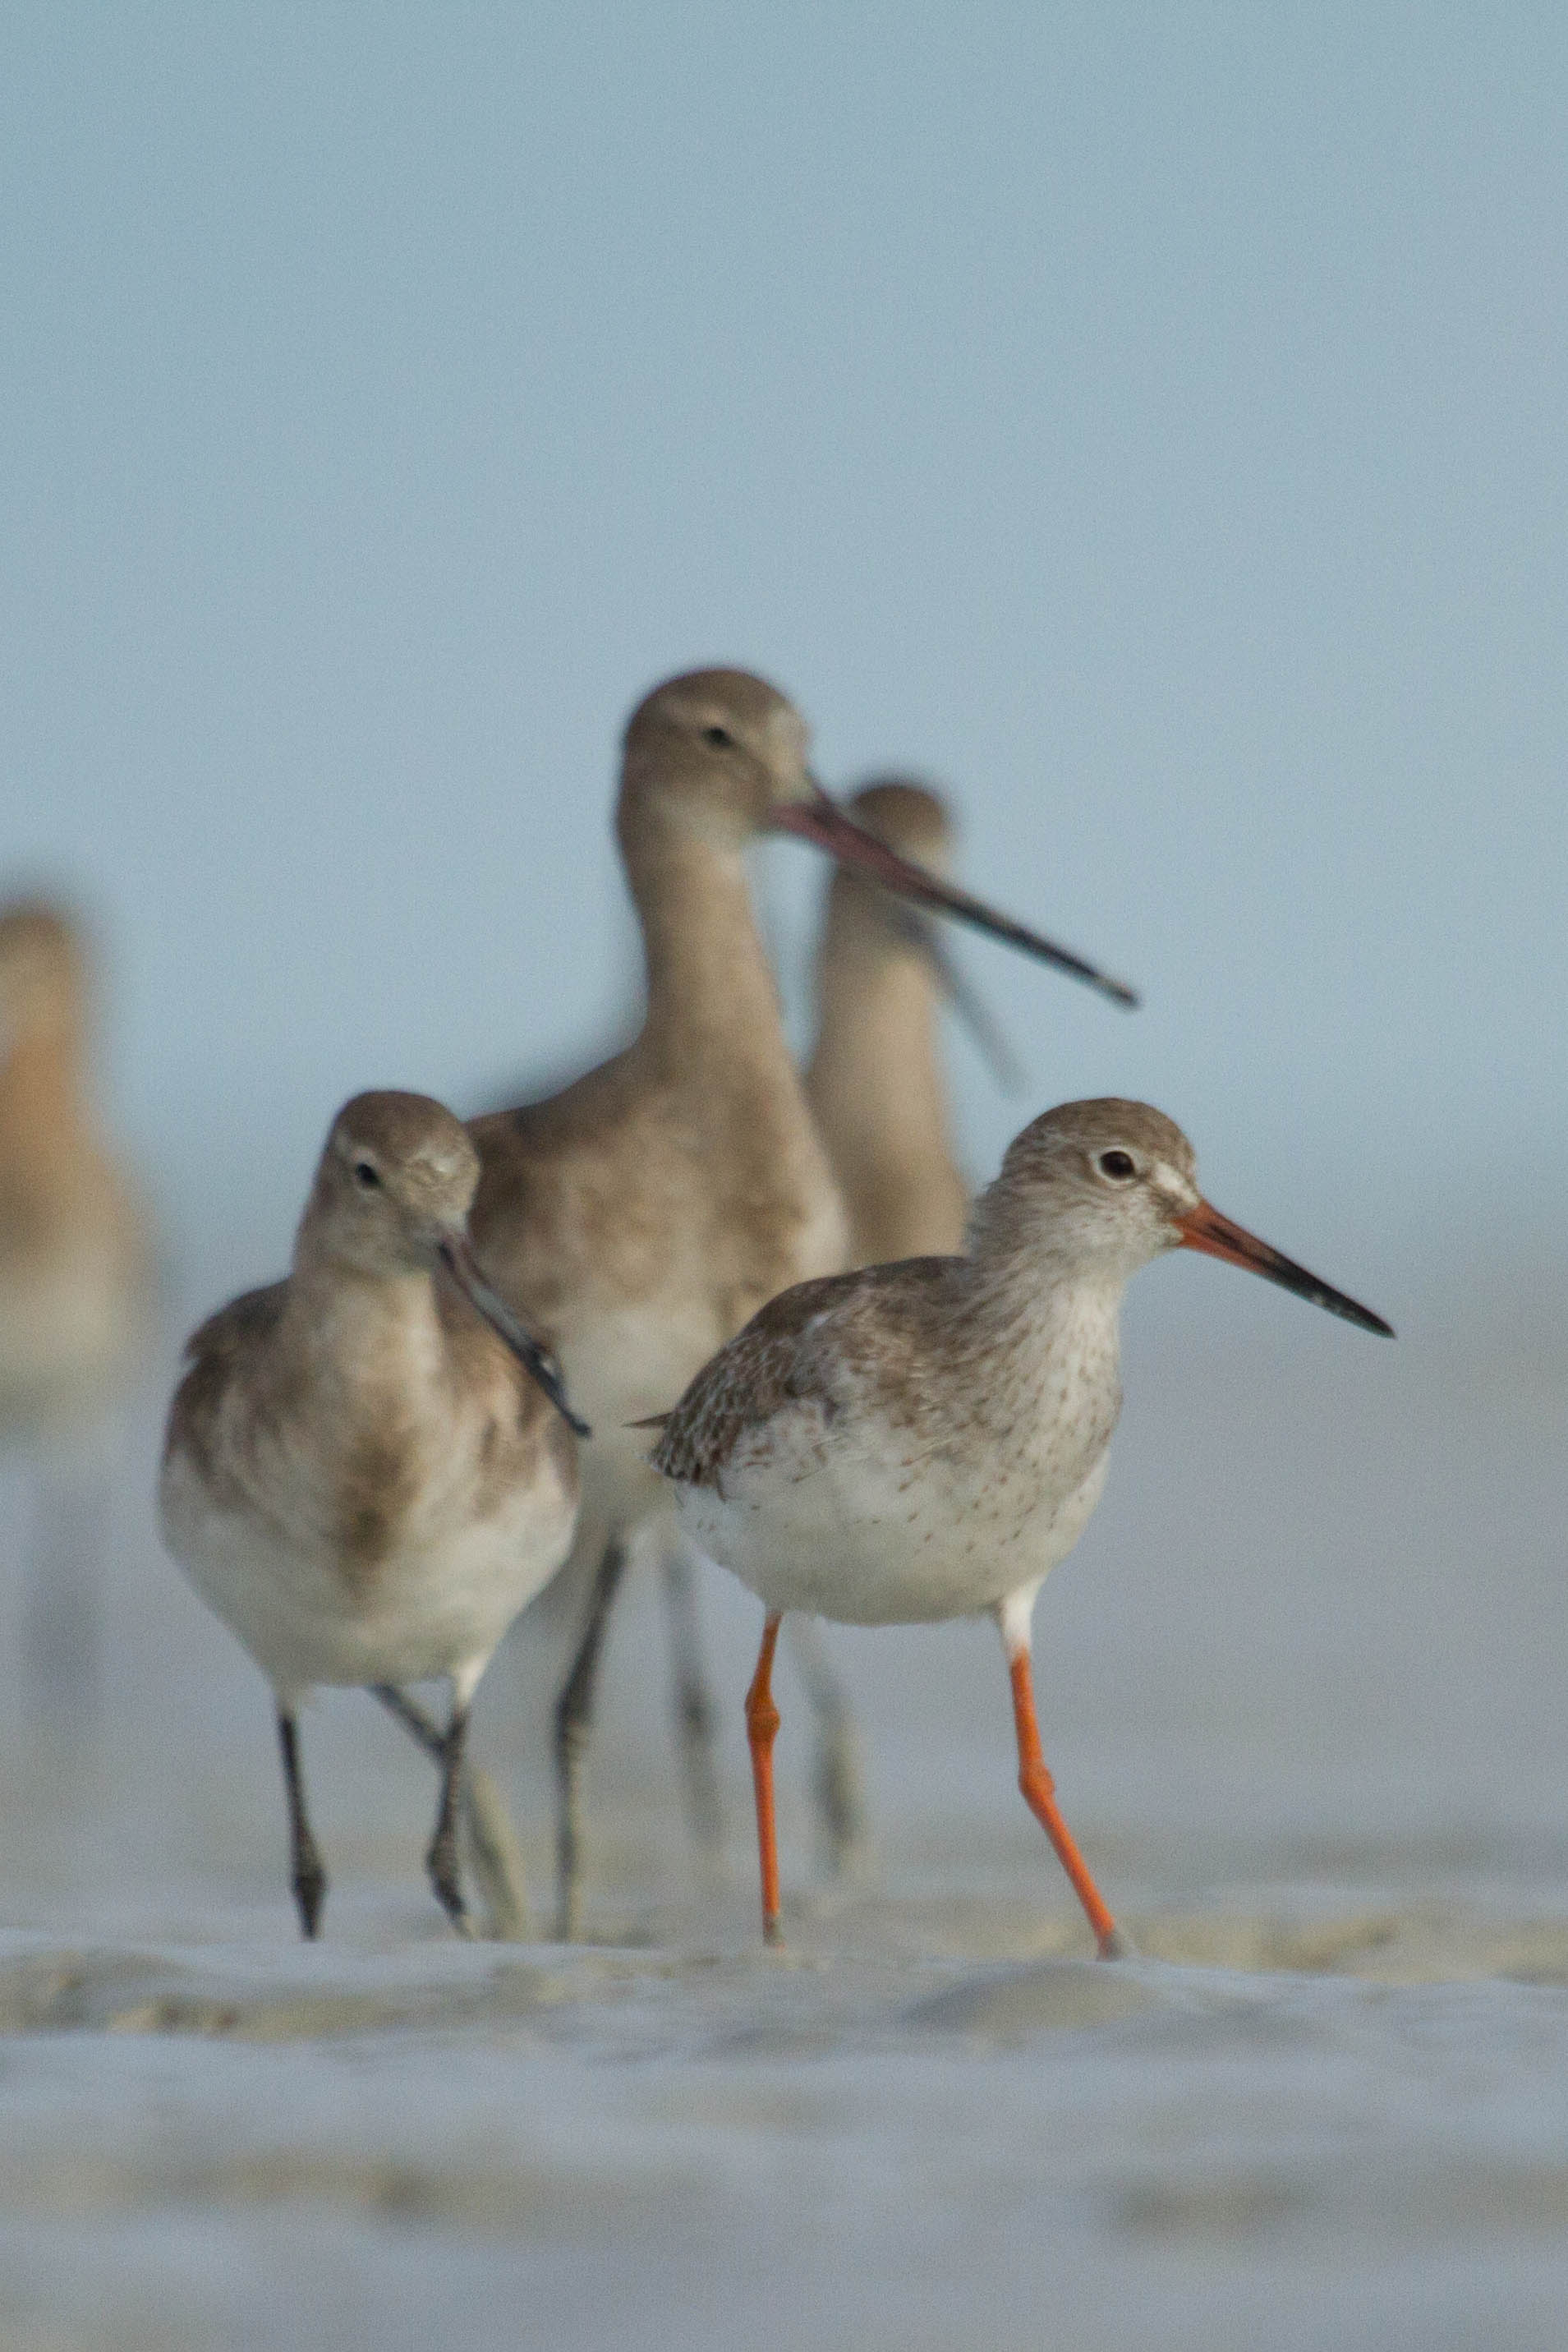 A first-year Common Redshank joins Black-tailed Godwits on the mud. Photo: Nigel Jackett